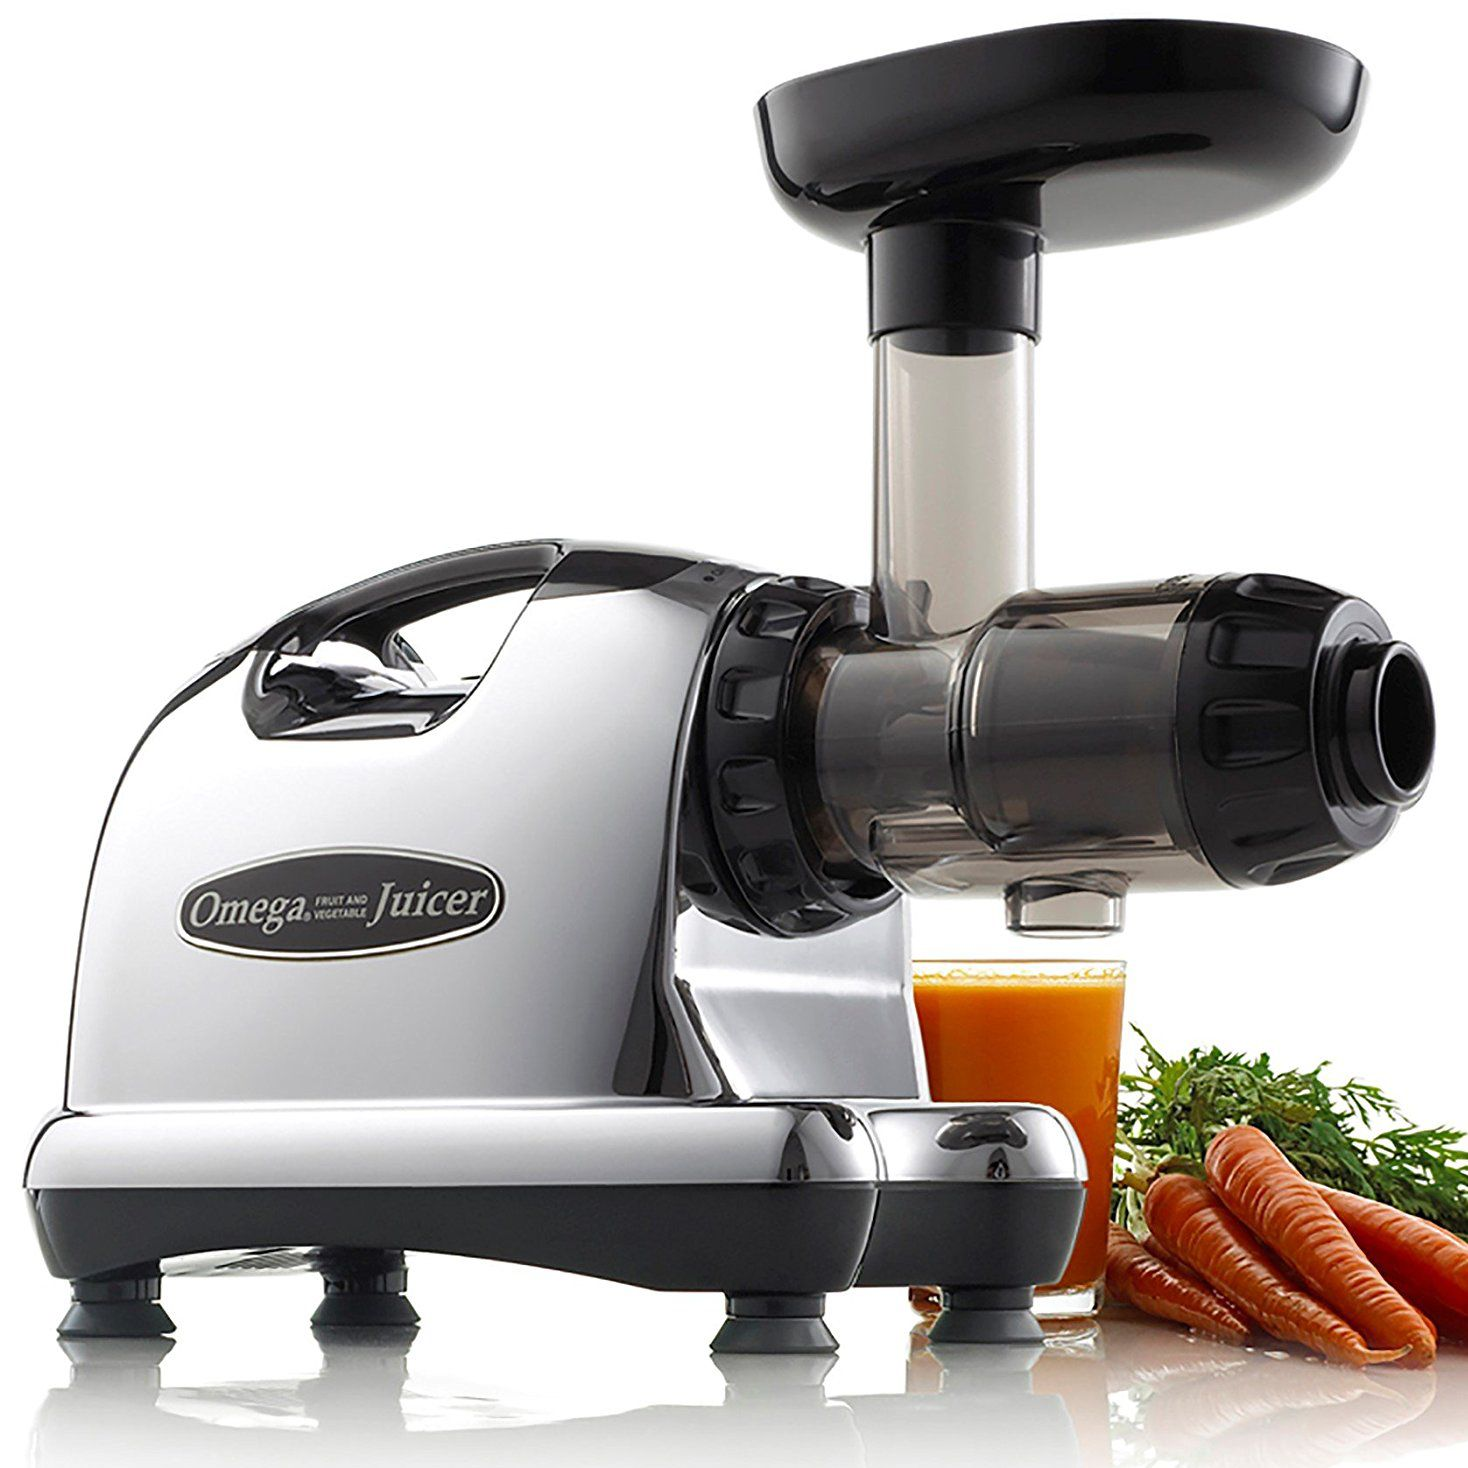 omega juicers nutrition center juicer dualstage extractor top